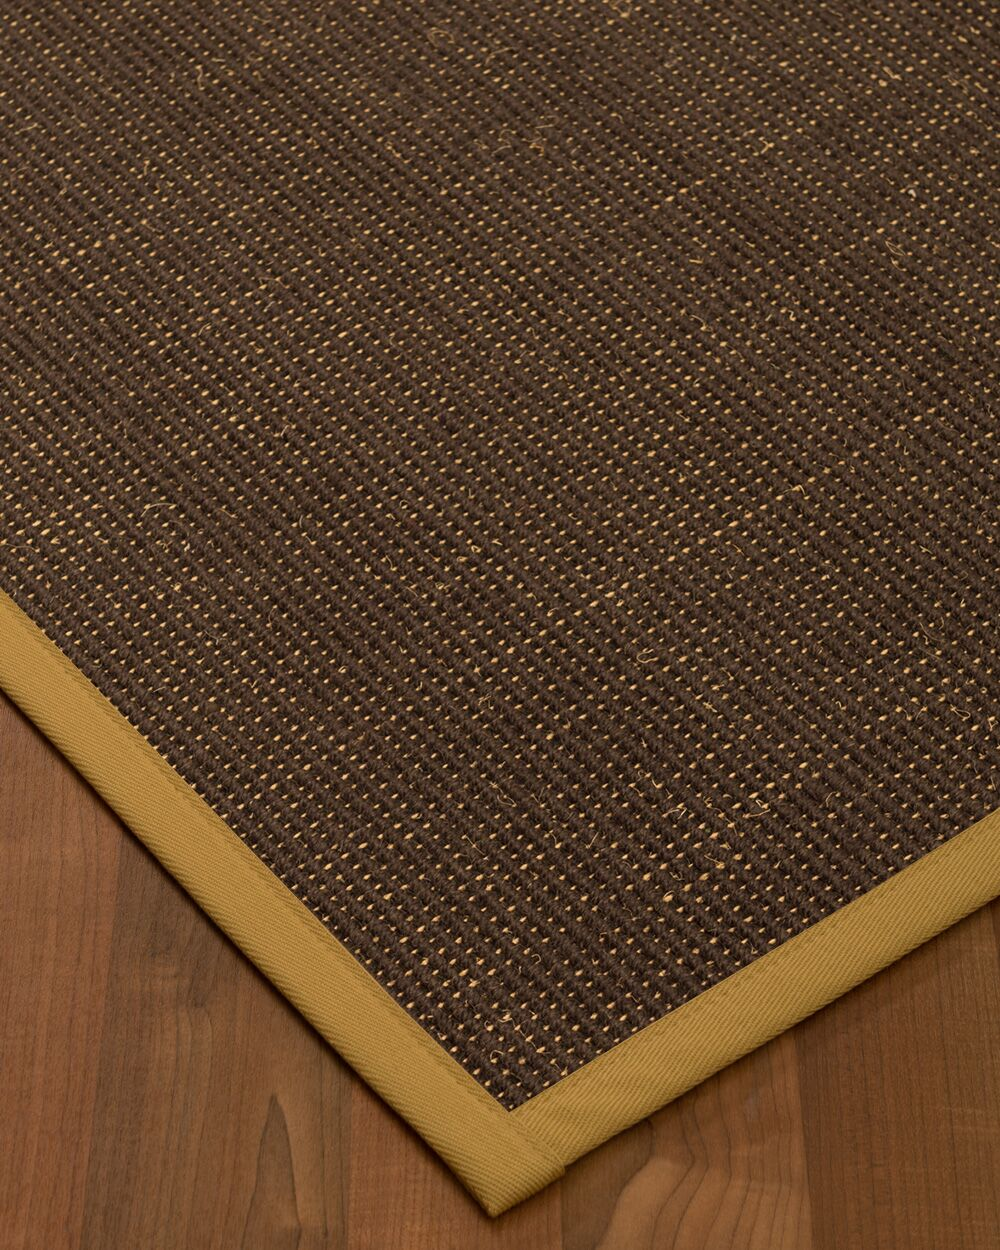 Kersh Border Hand-Woven Brown/Sage Area Rug Rug Size: Rectangle 9' x 12', Rug Pad Included: Yes